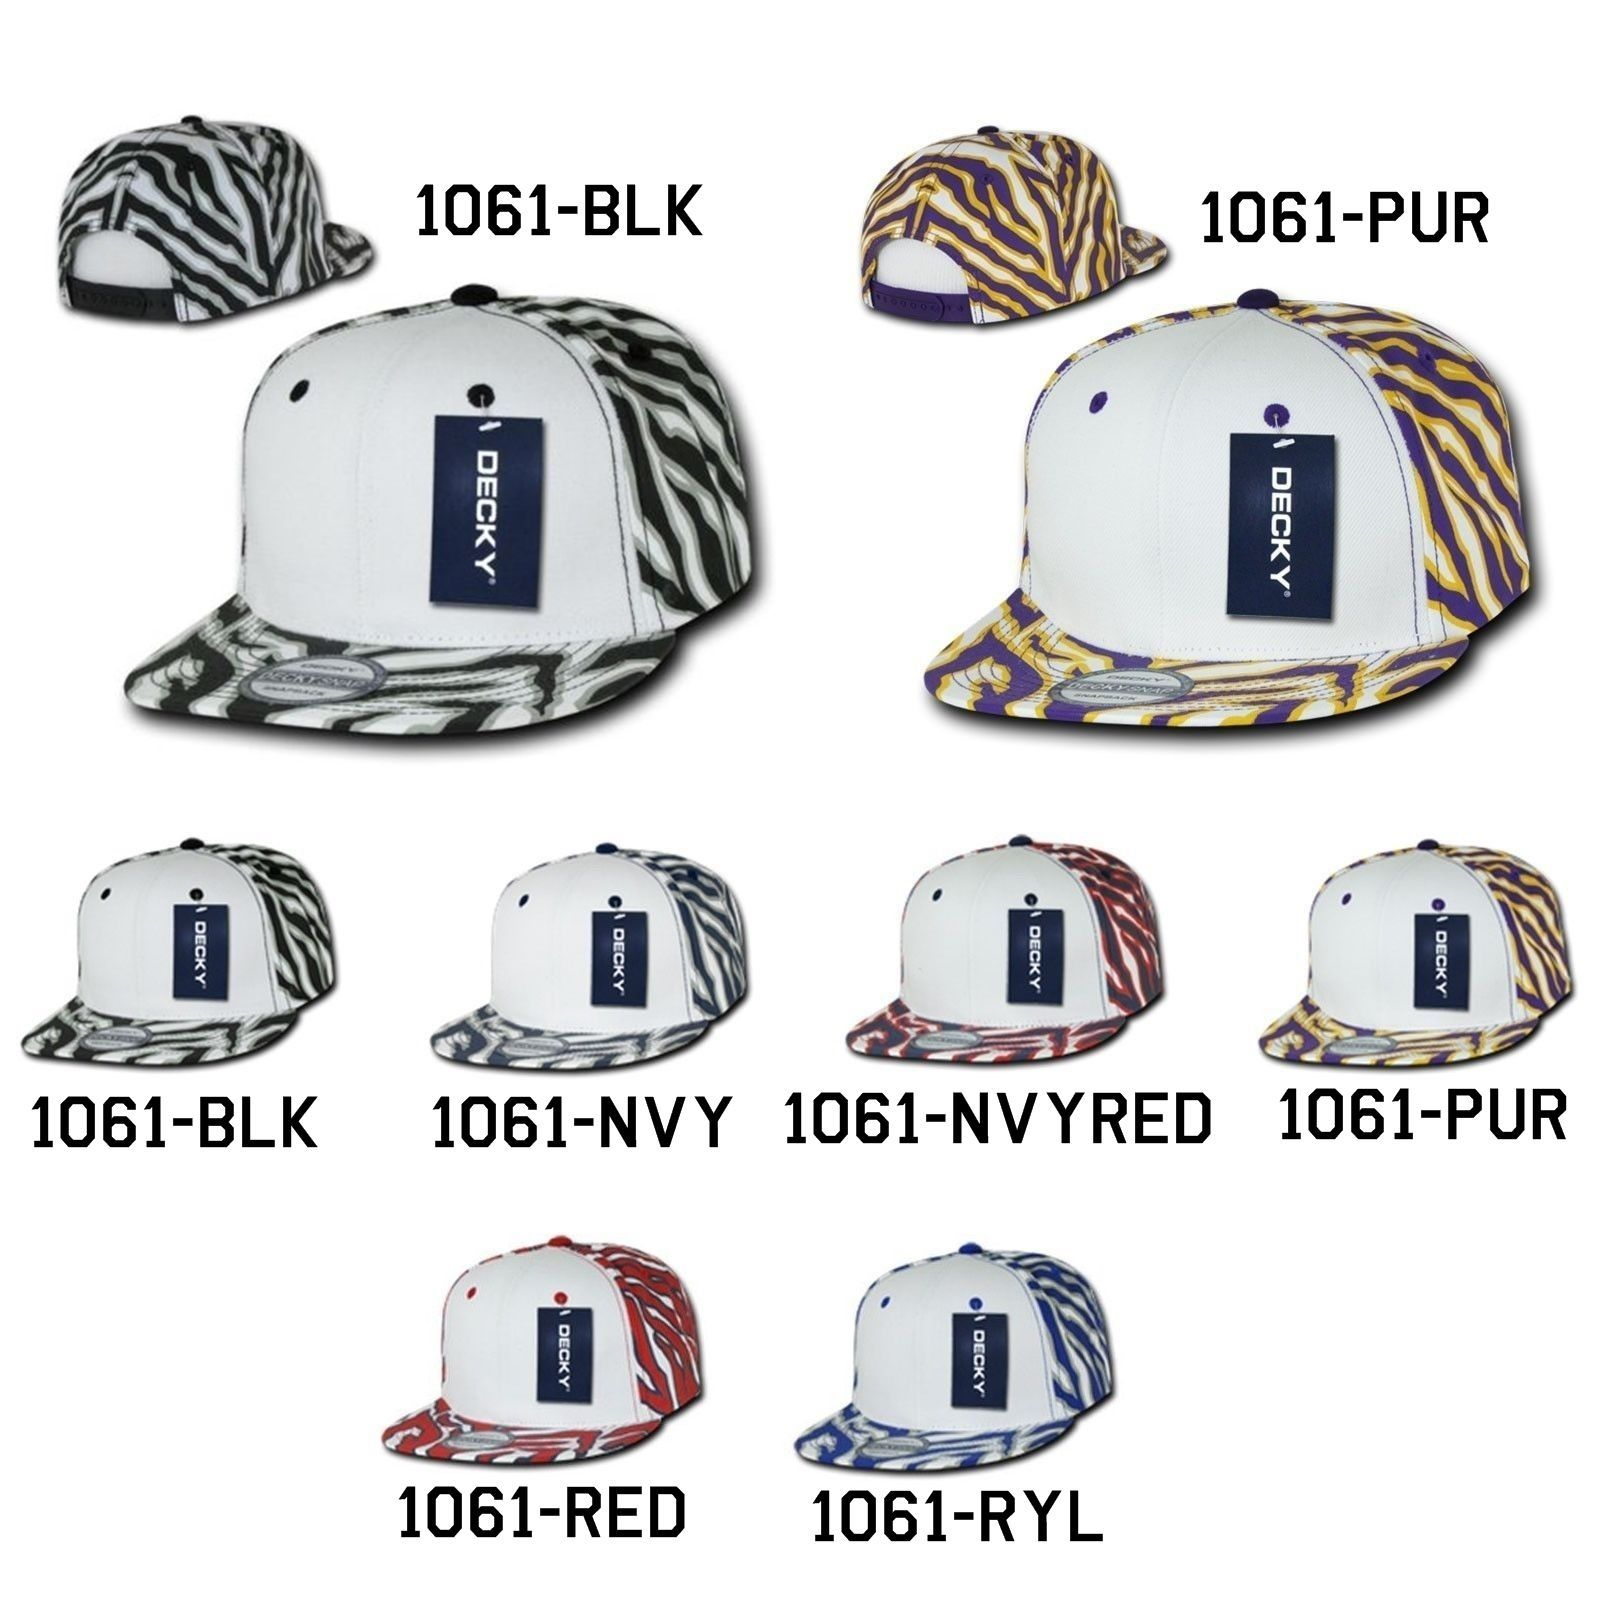 CUSTOM EMBROIDERY Personalized Customized Decky Ziger White Front Snapback 1061